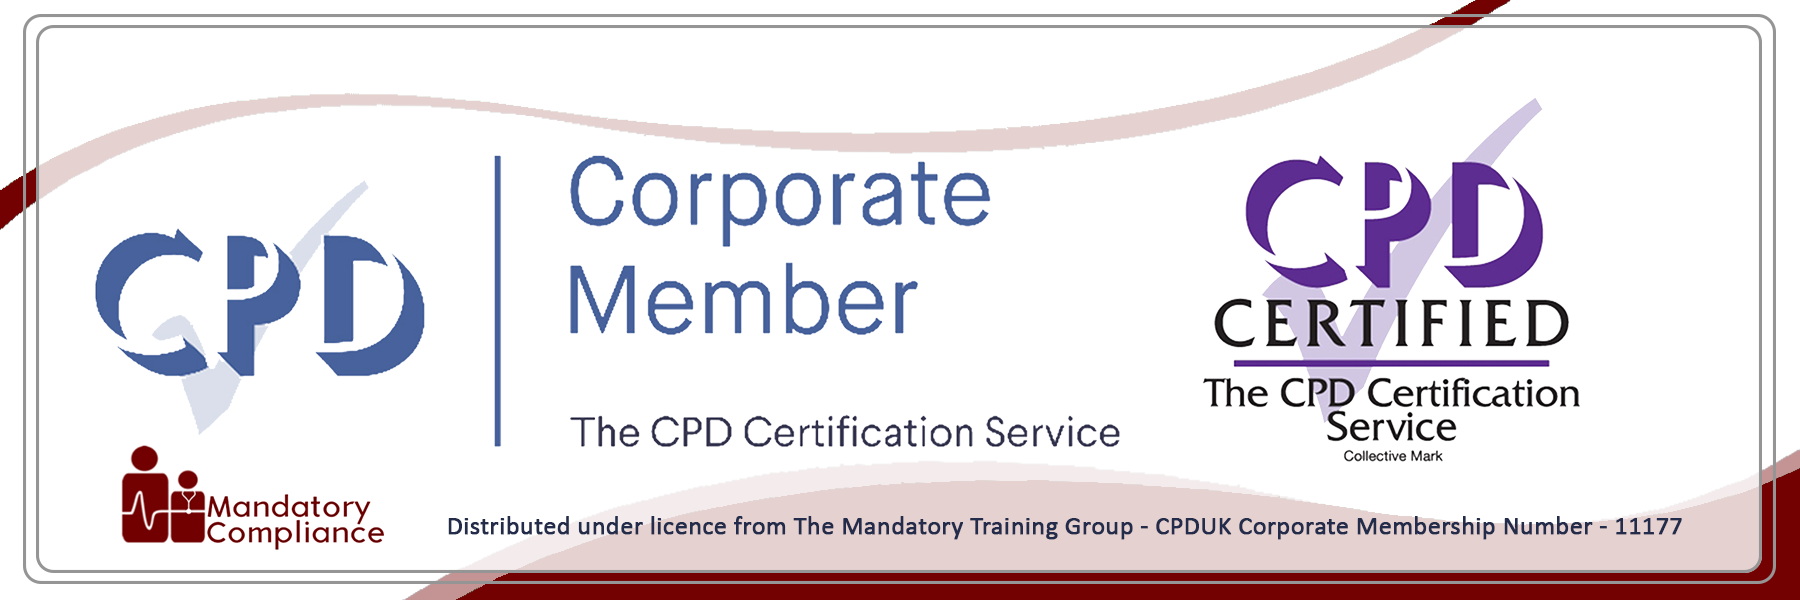 Safeguarding Adults – Train the Trainer Course + Trainer Pack - Online Learning Courses - E-Learning Courses - Mandatory Compliance UK -